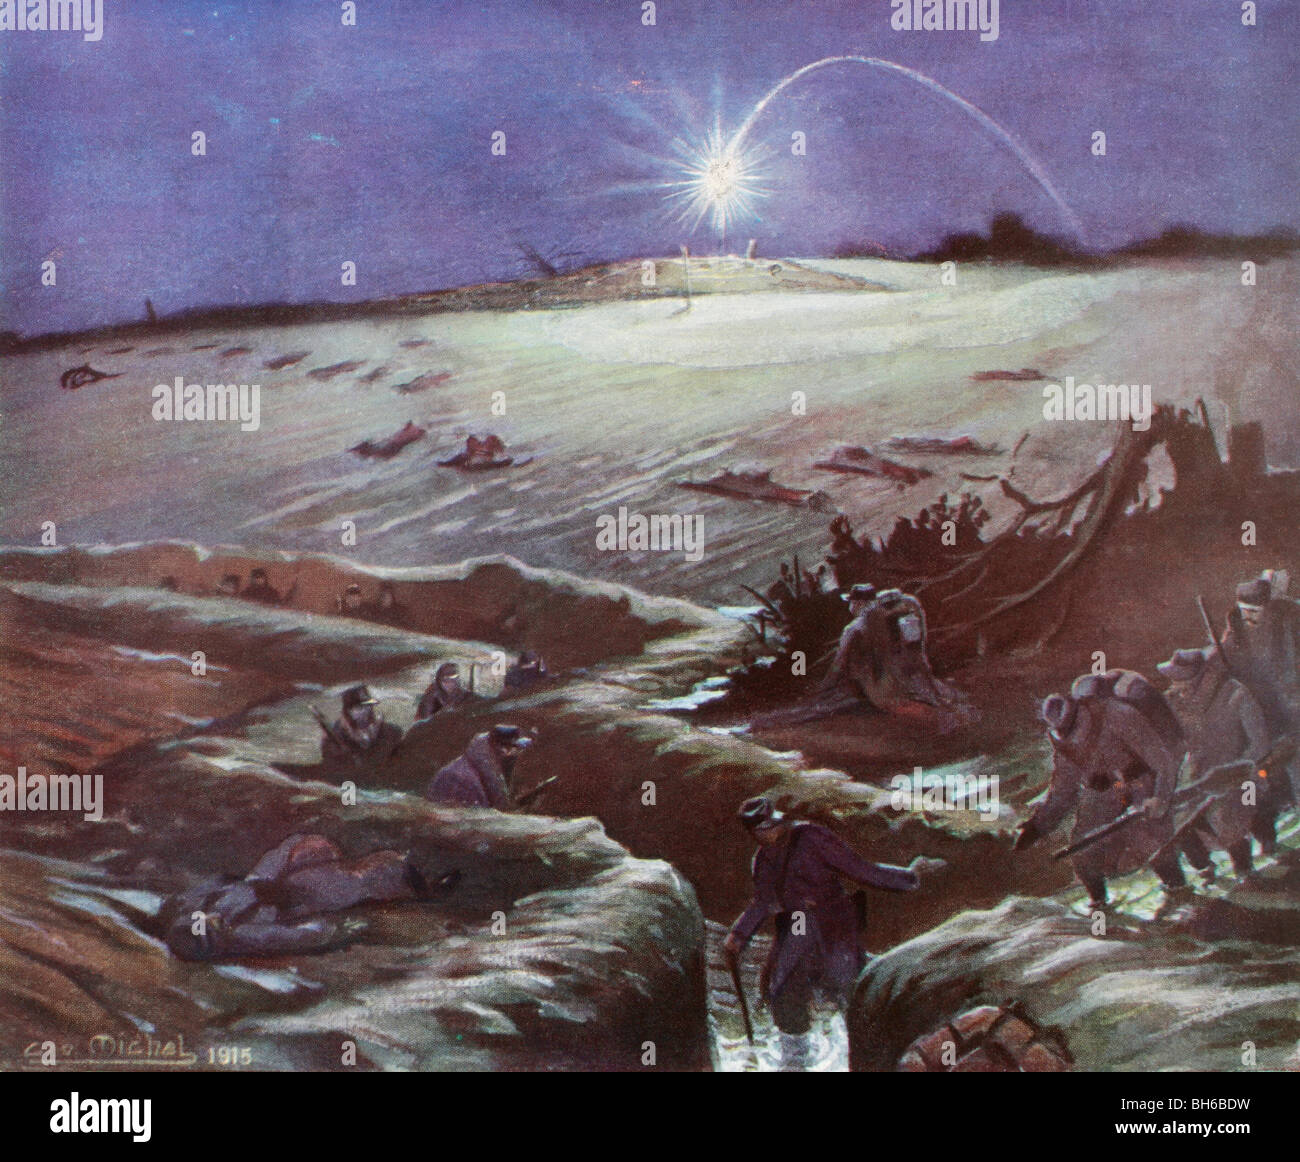 No Man's Land lit by a flare. Winter trench warfare during the First World War. - Stock Image